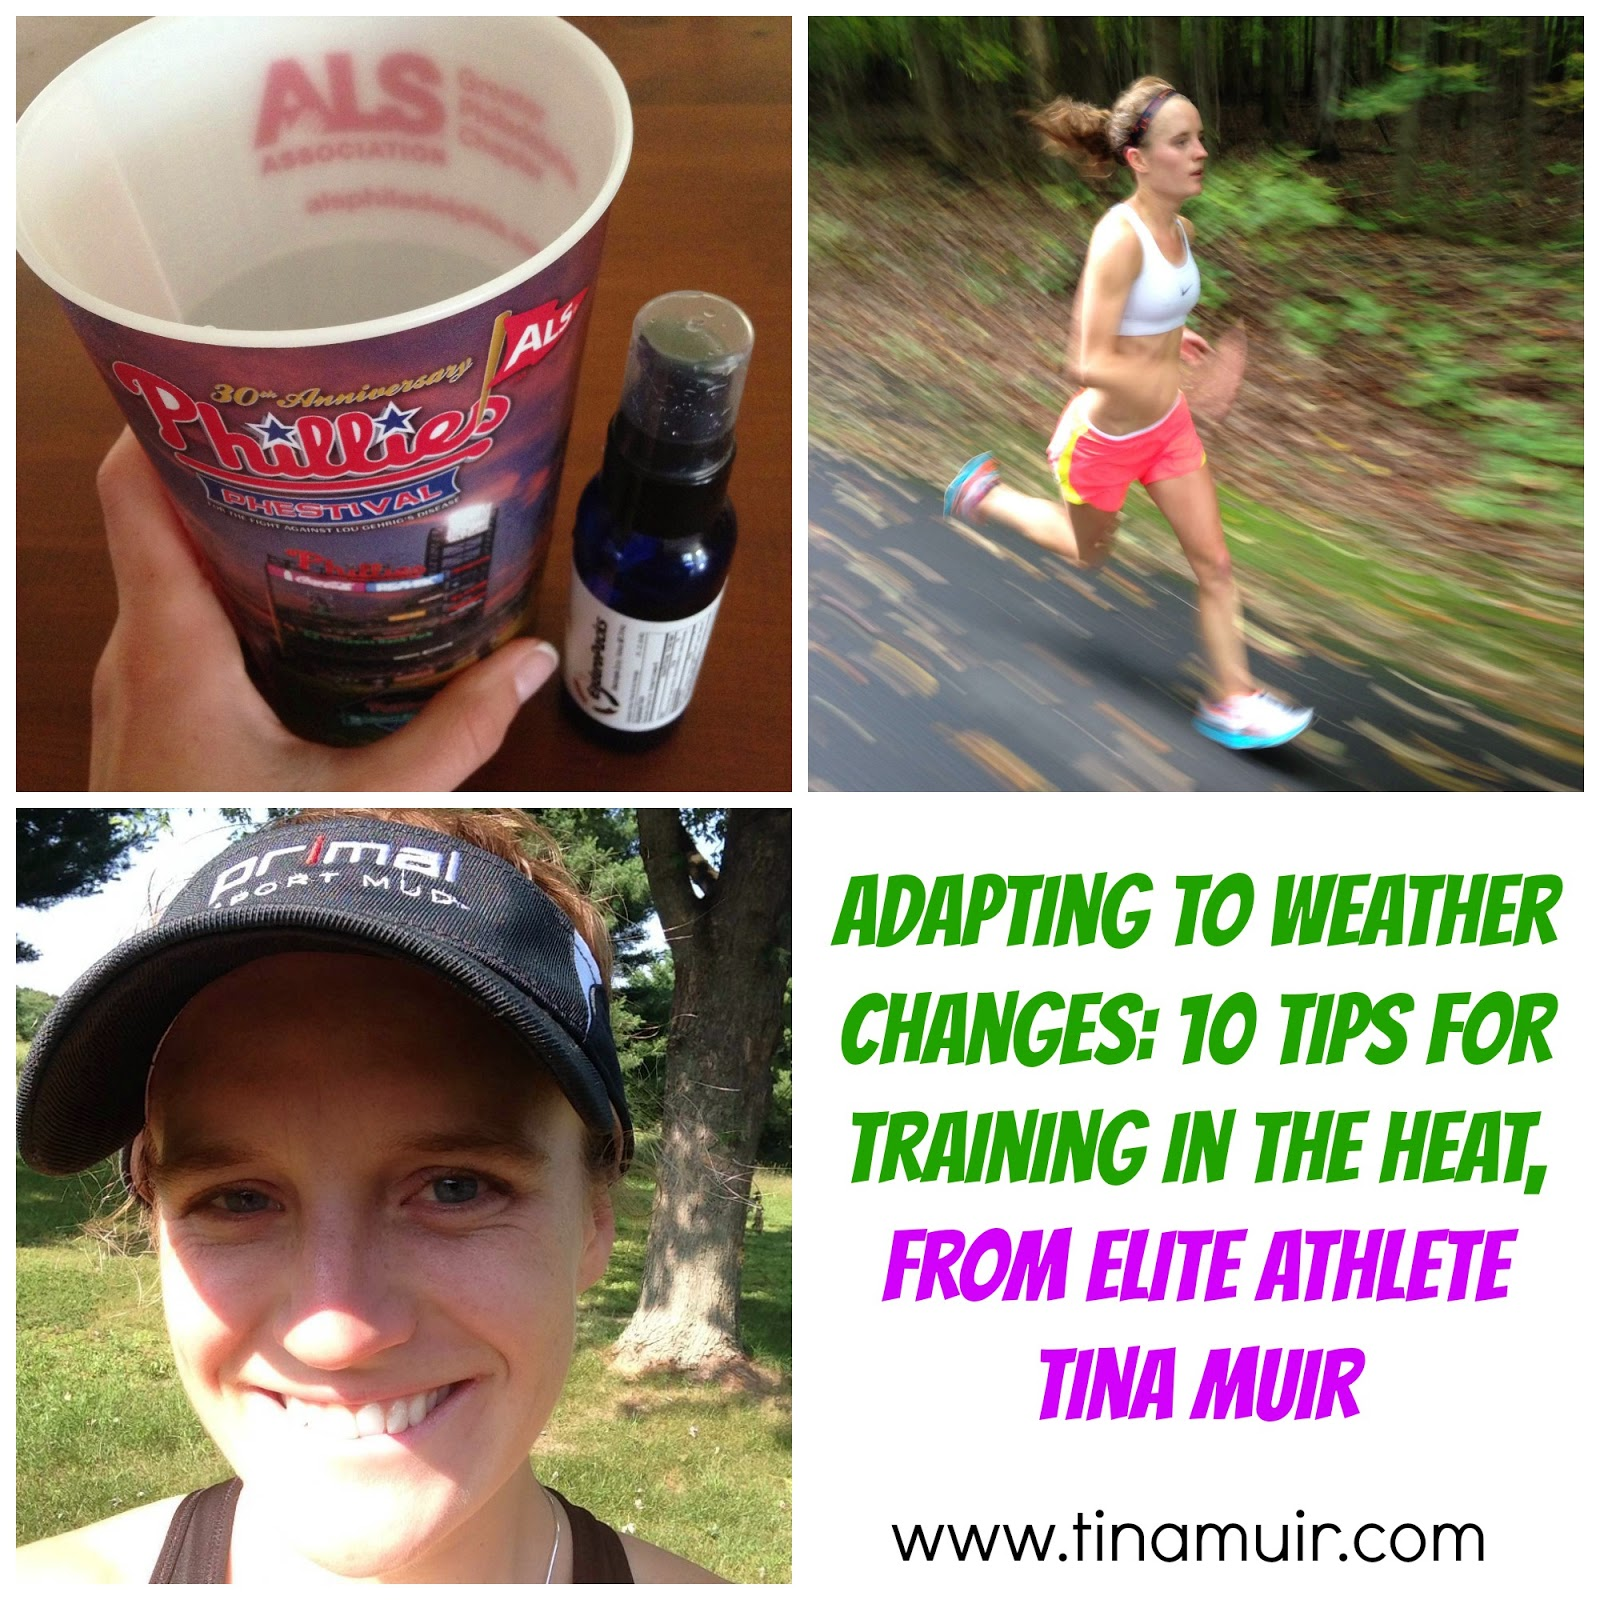 Adapting to Weather Changes: 10 Tips for Training in the Heat by elite athlete Tina Muir